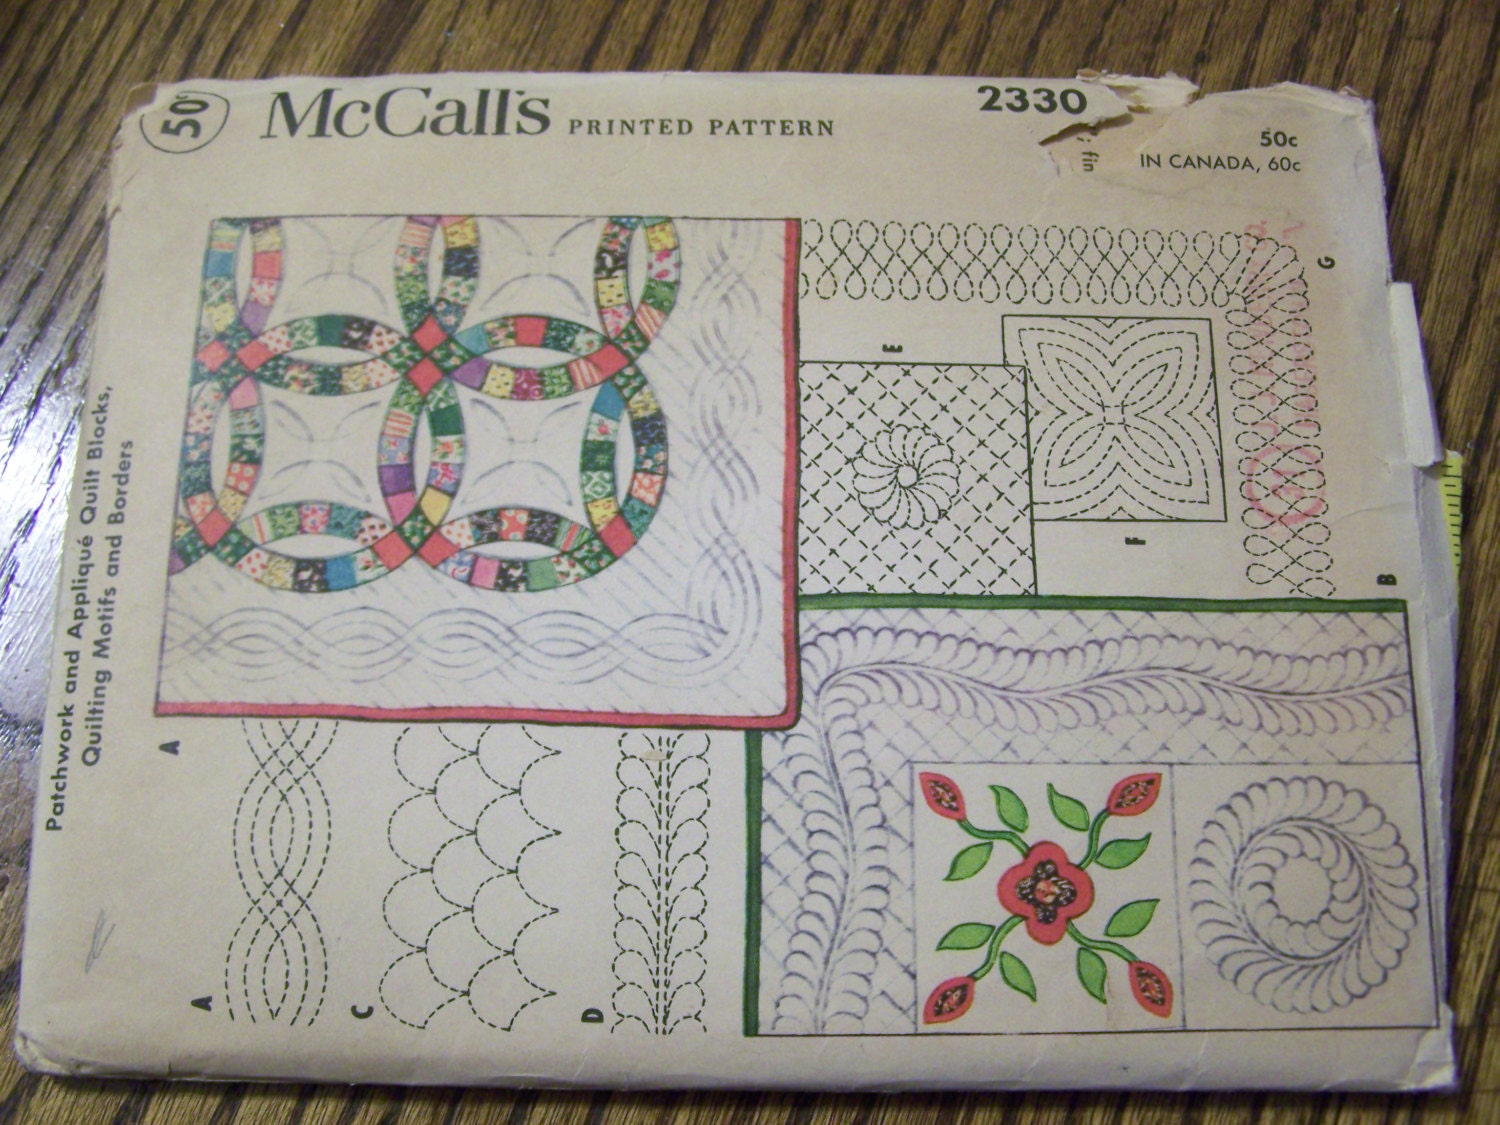 McCalls Pattern 2330 1940s Patchwork and applique by mattegold